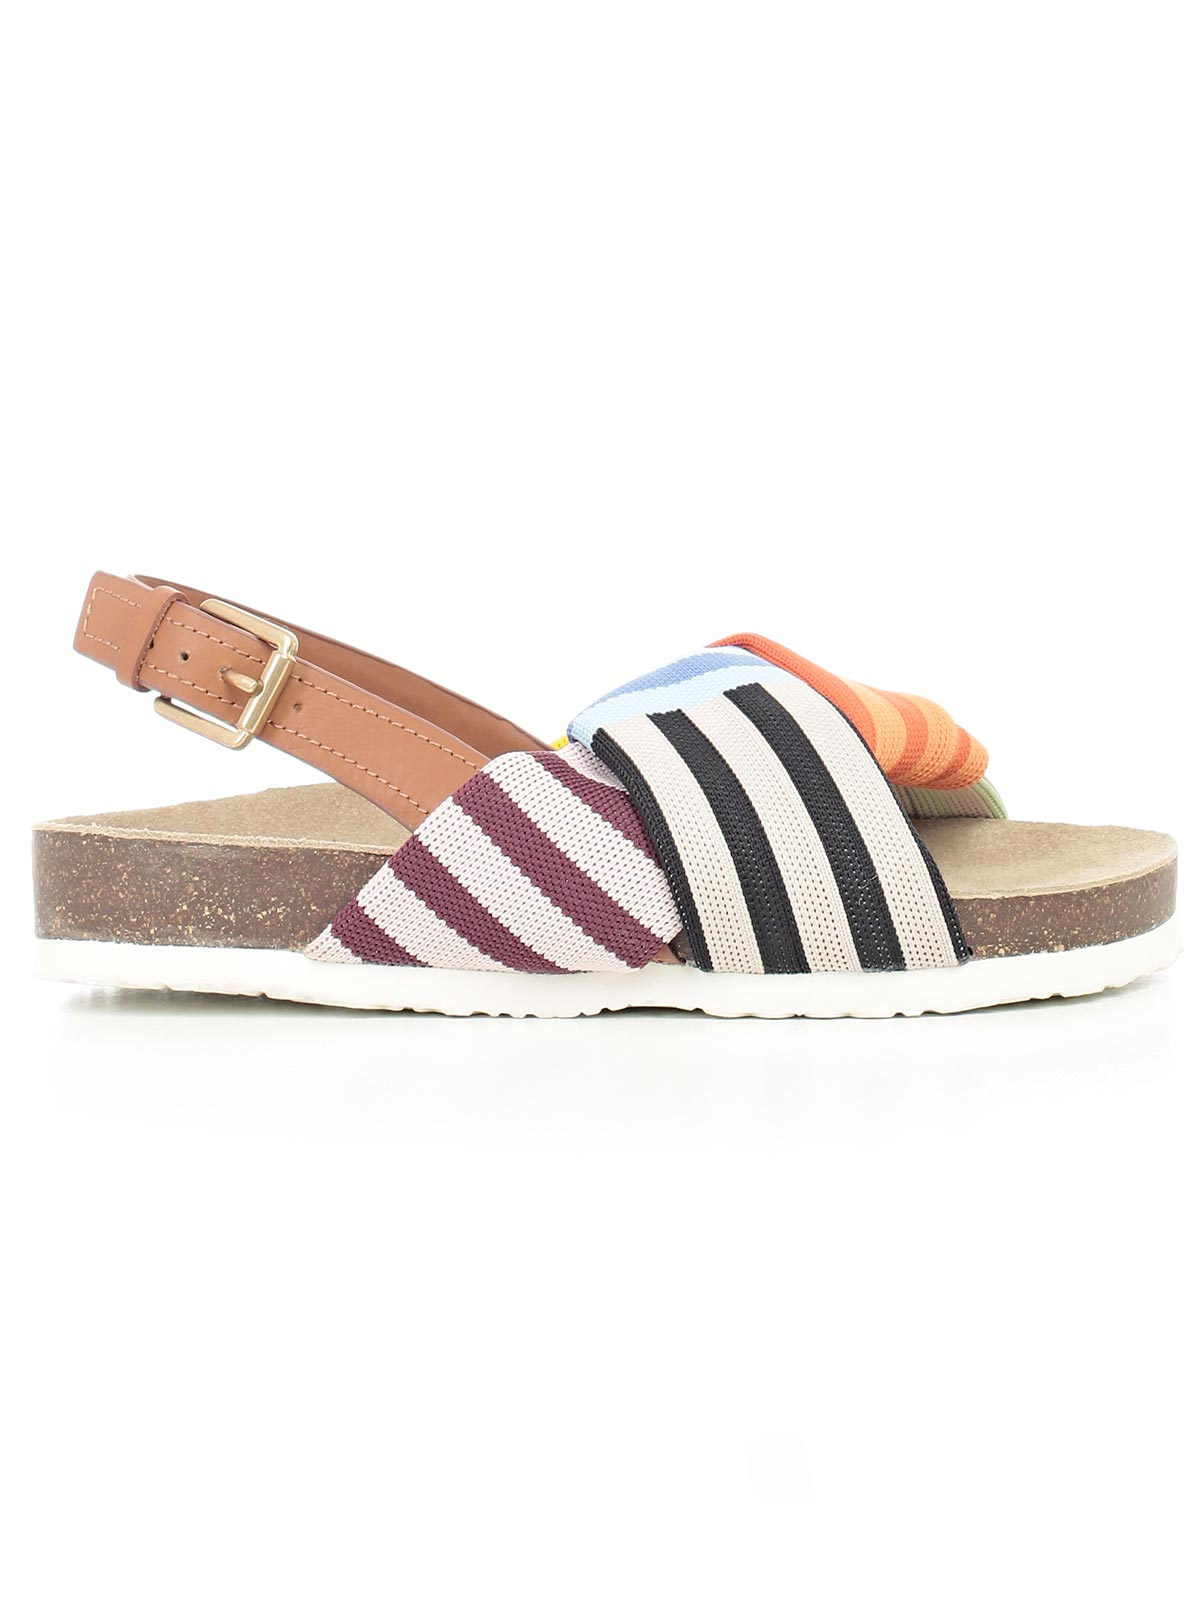 Picture of Tory Burch Footwear